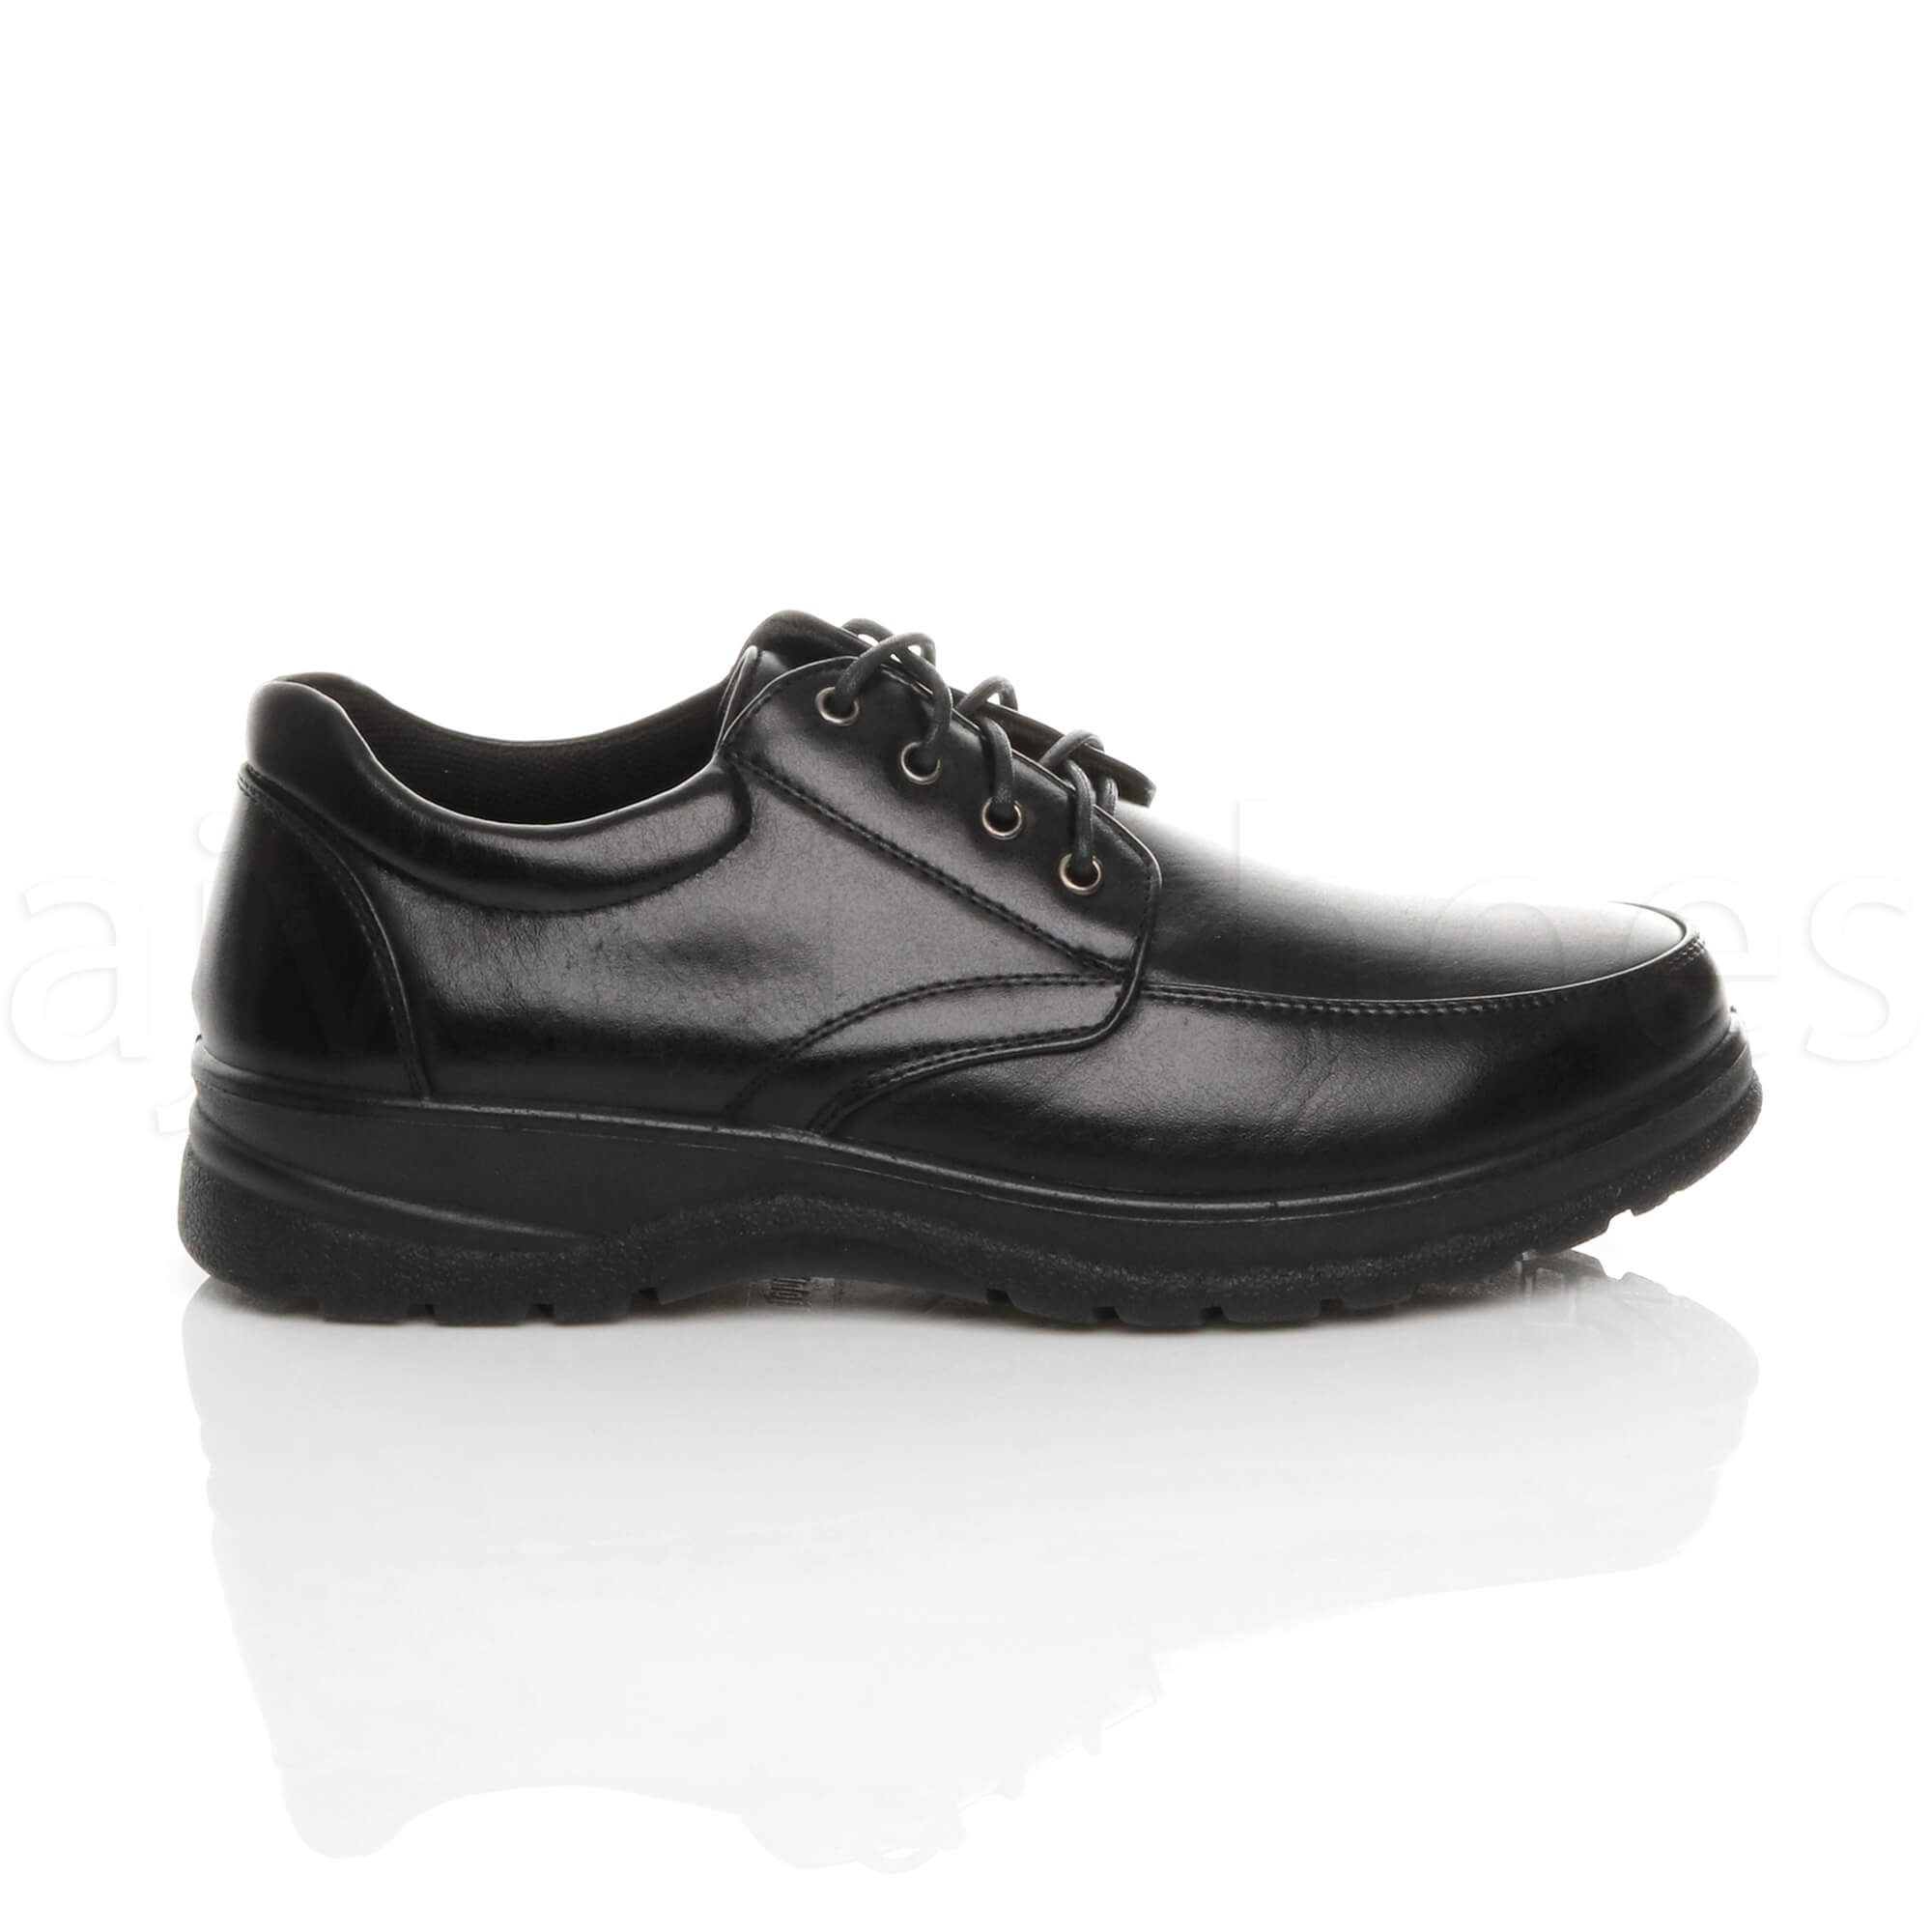 MENS-LACE-UP-CASUAL-MEMORY-FOAM-INSOLE-COMFORT-CUSHIONED-WORK-SHOES-SIZE thumbnail 3